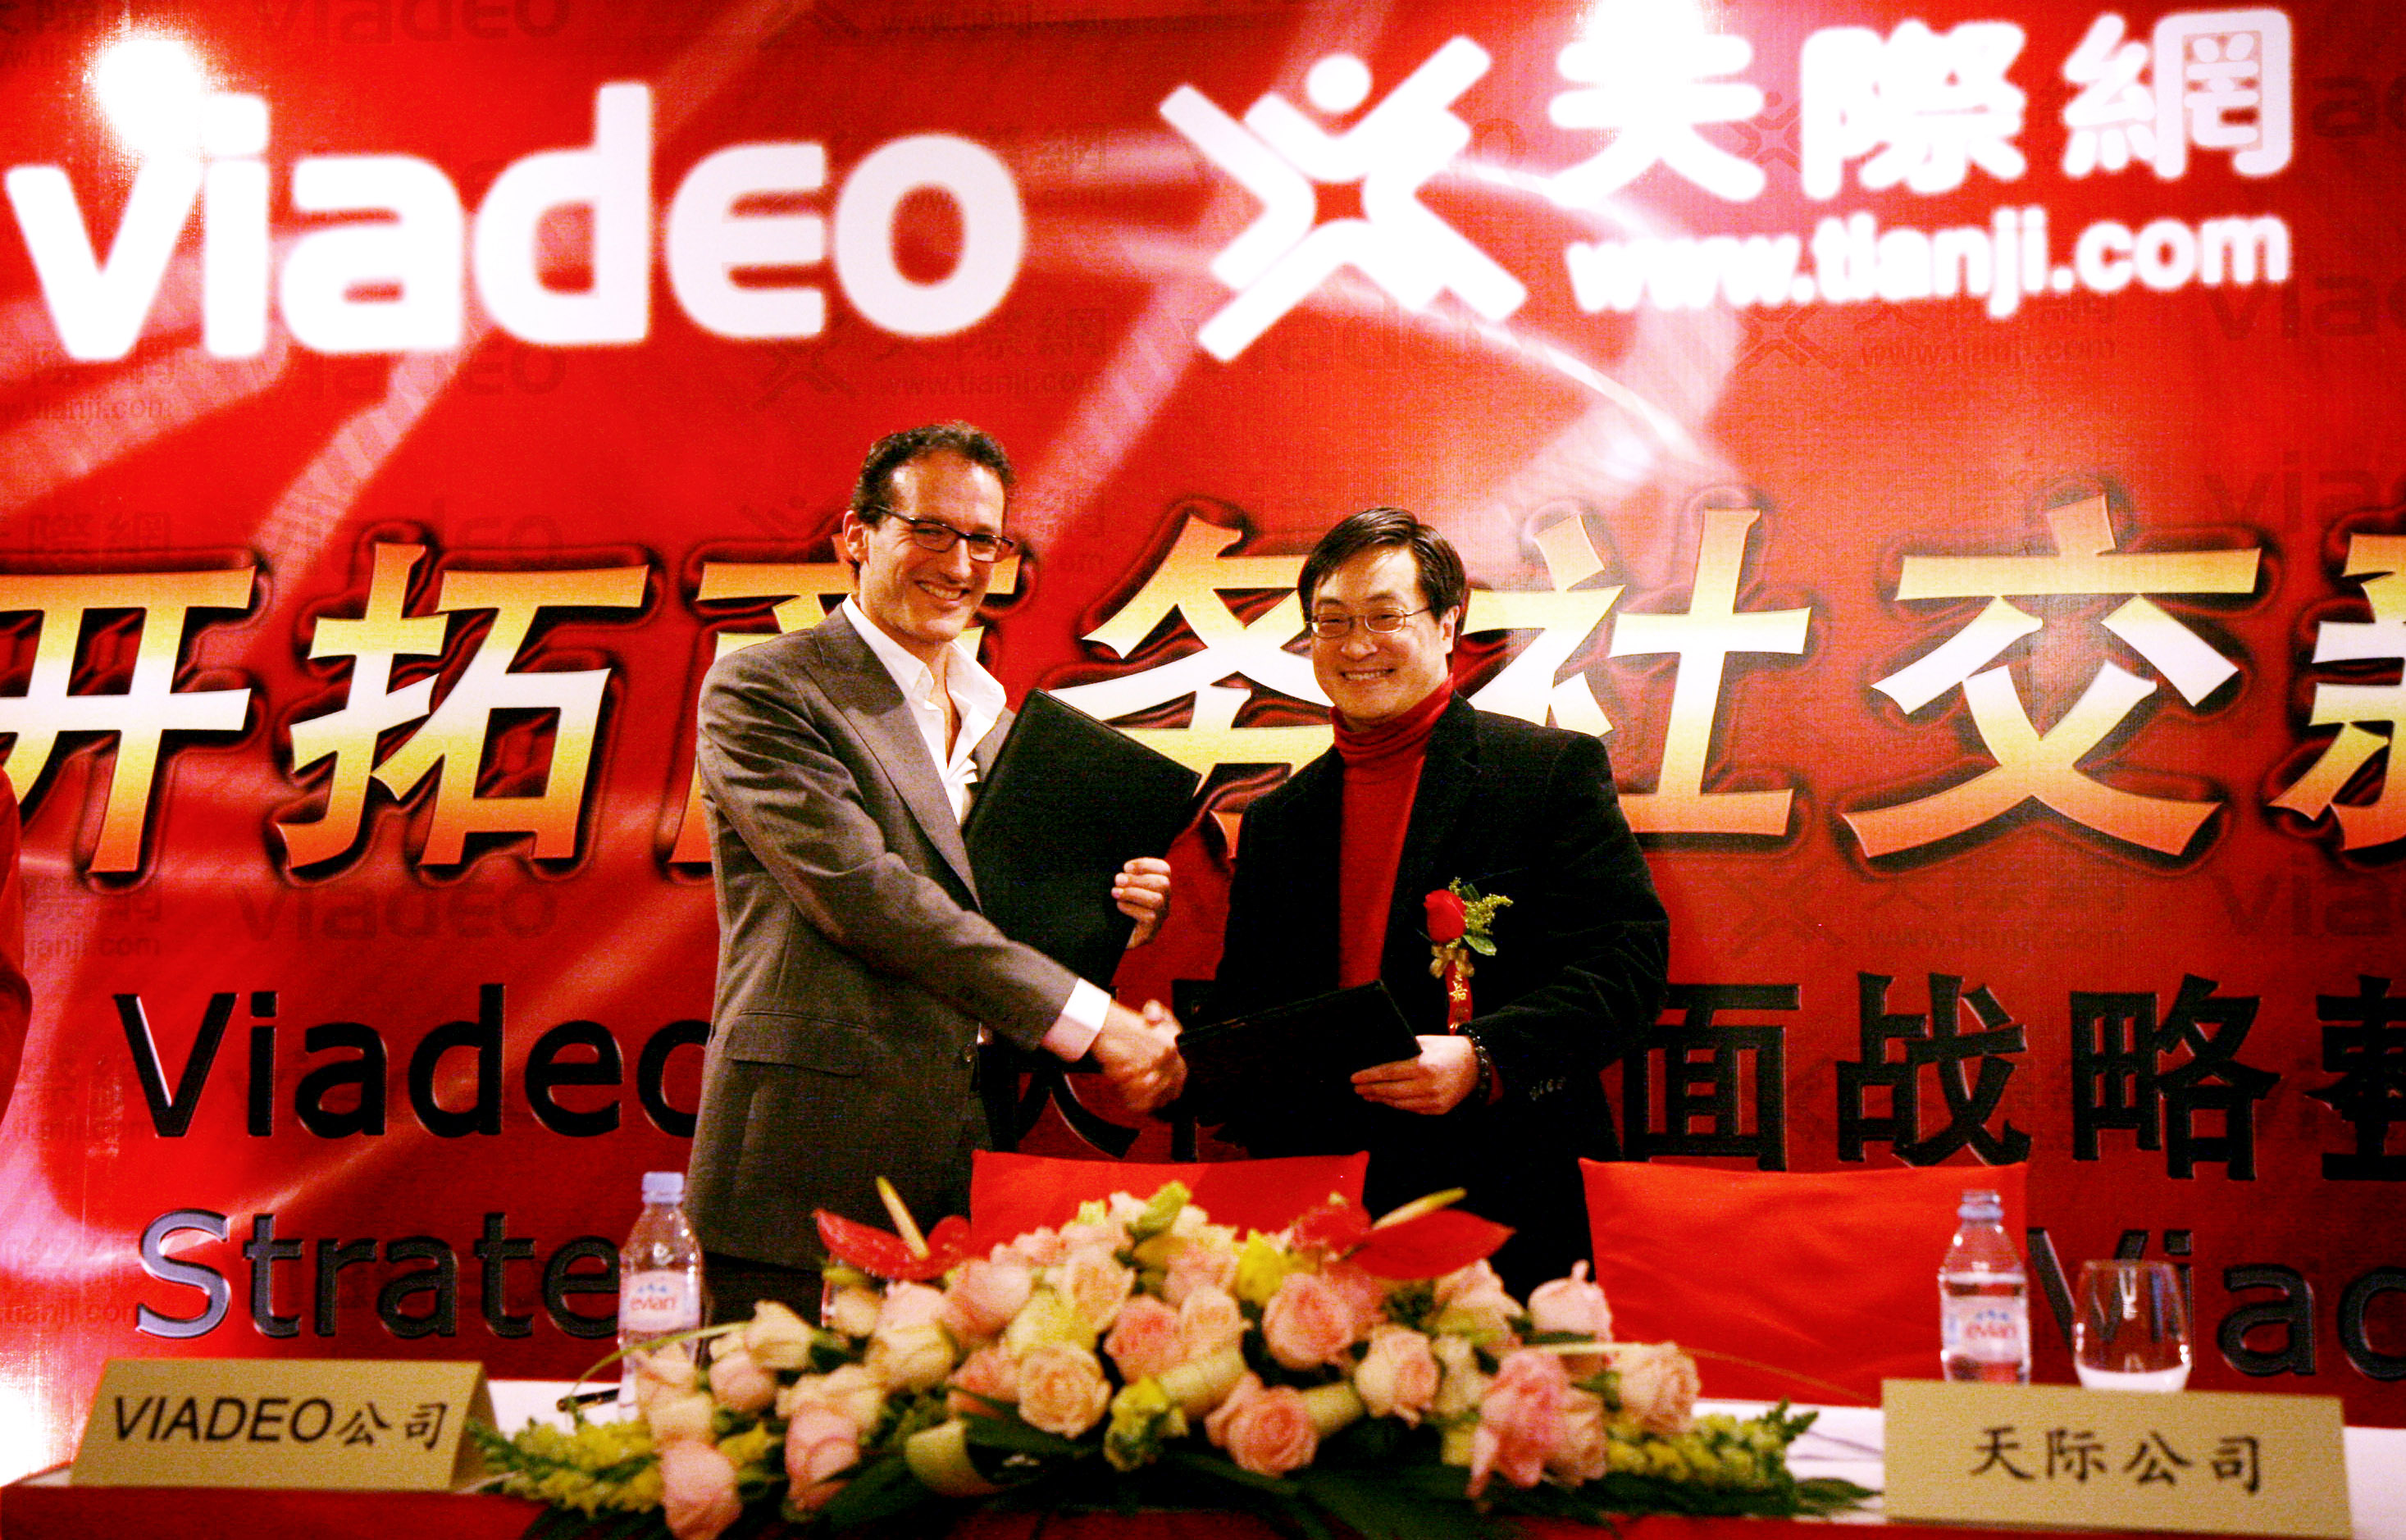 LinkedIn rival Viadeo plans to super-charge its Chinese business via a French IPO